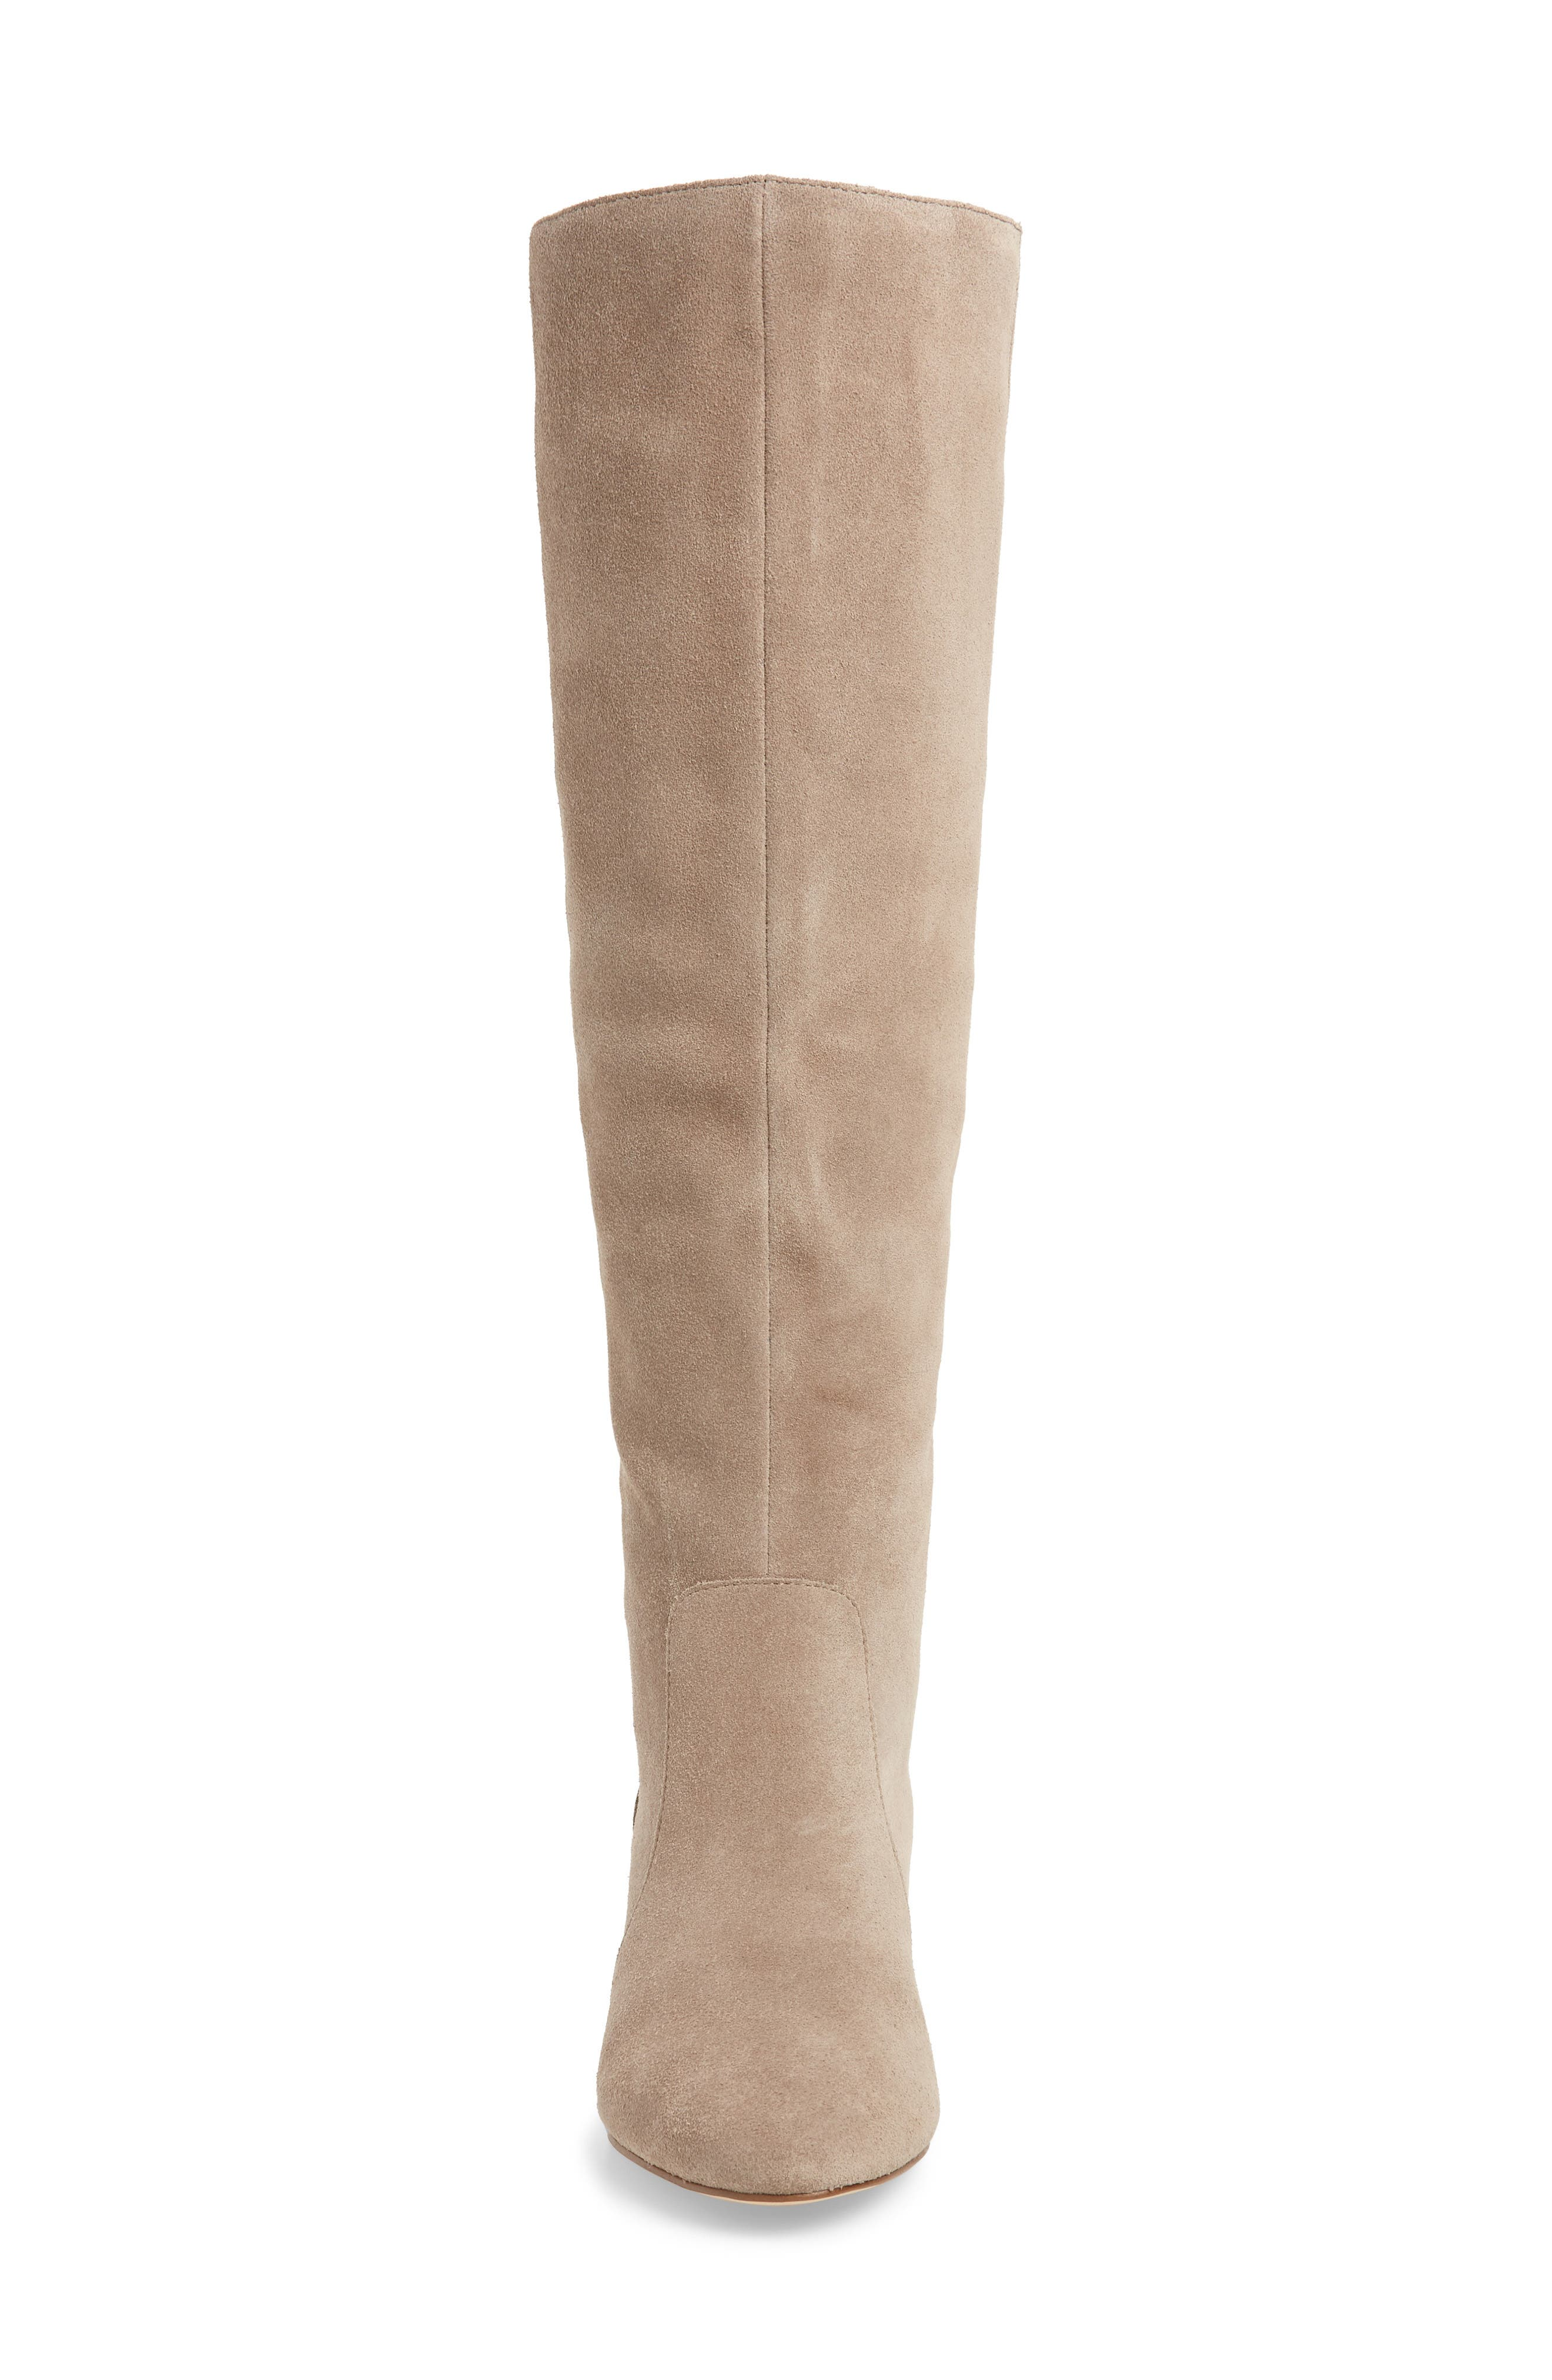 Aileena Over the Knee Boot,                             Alternate thumbnail 4, color,                             263